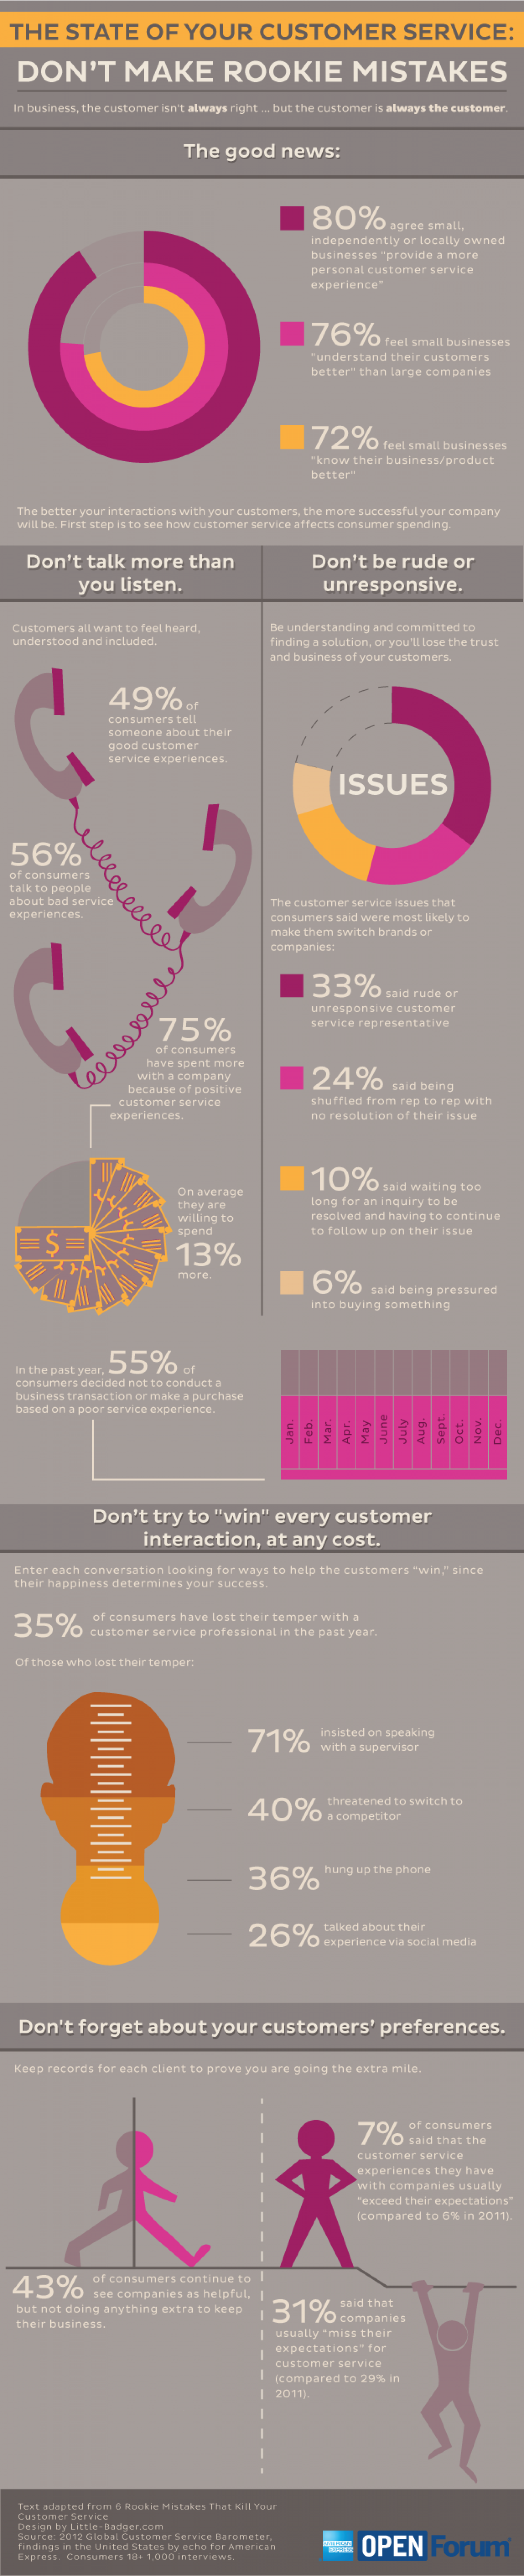 The State of Your Customer Service: Don't Make Rookie Mistakes Infographic